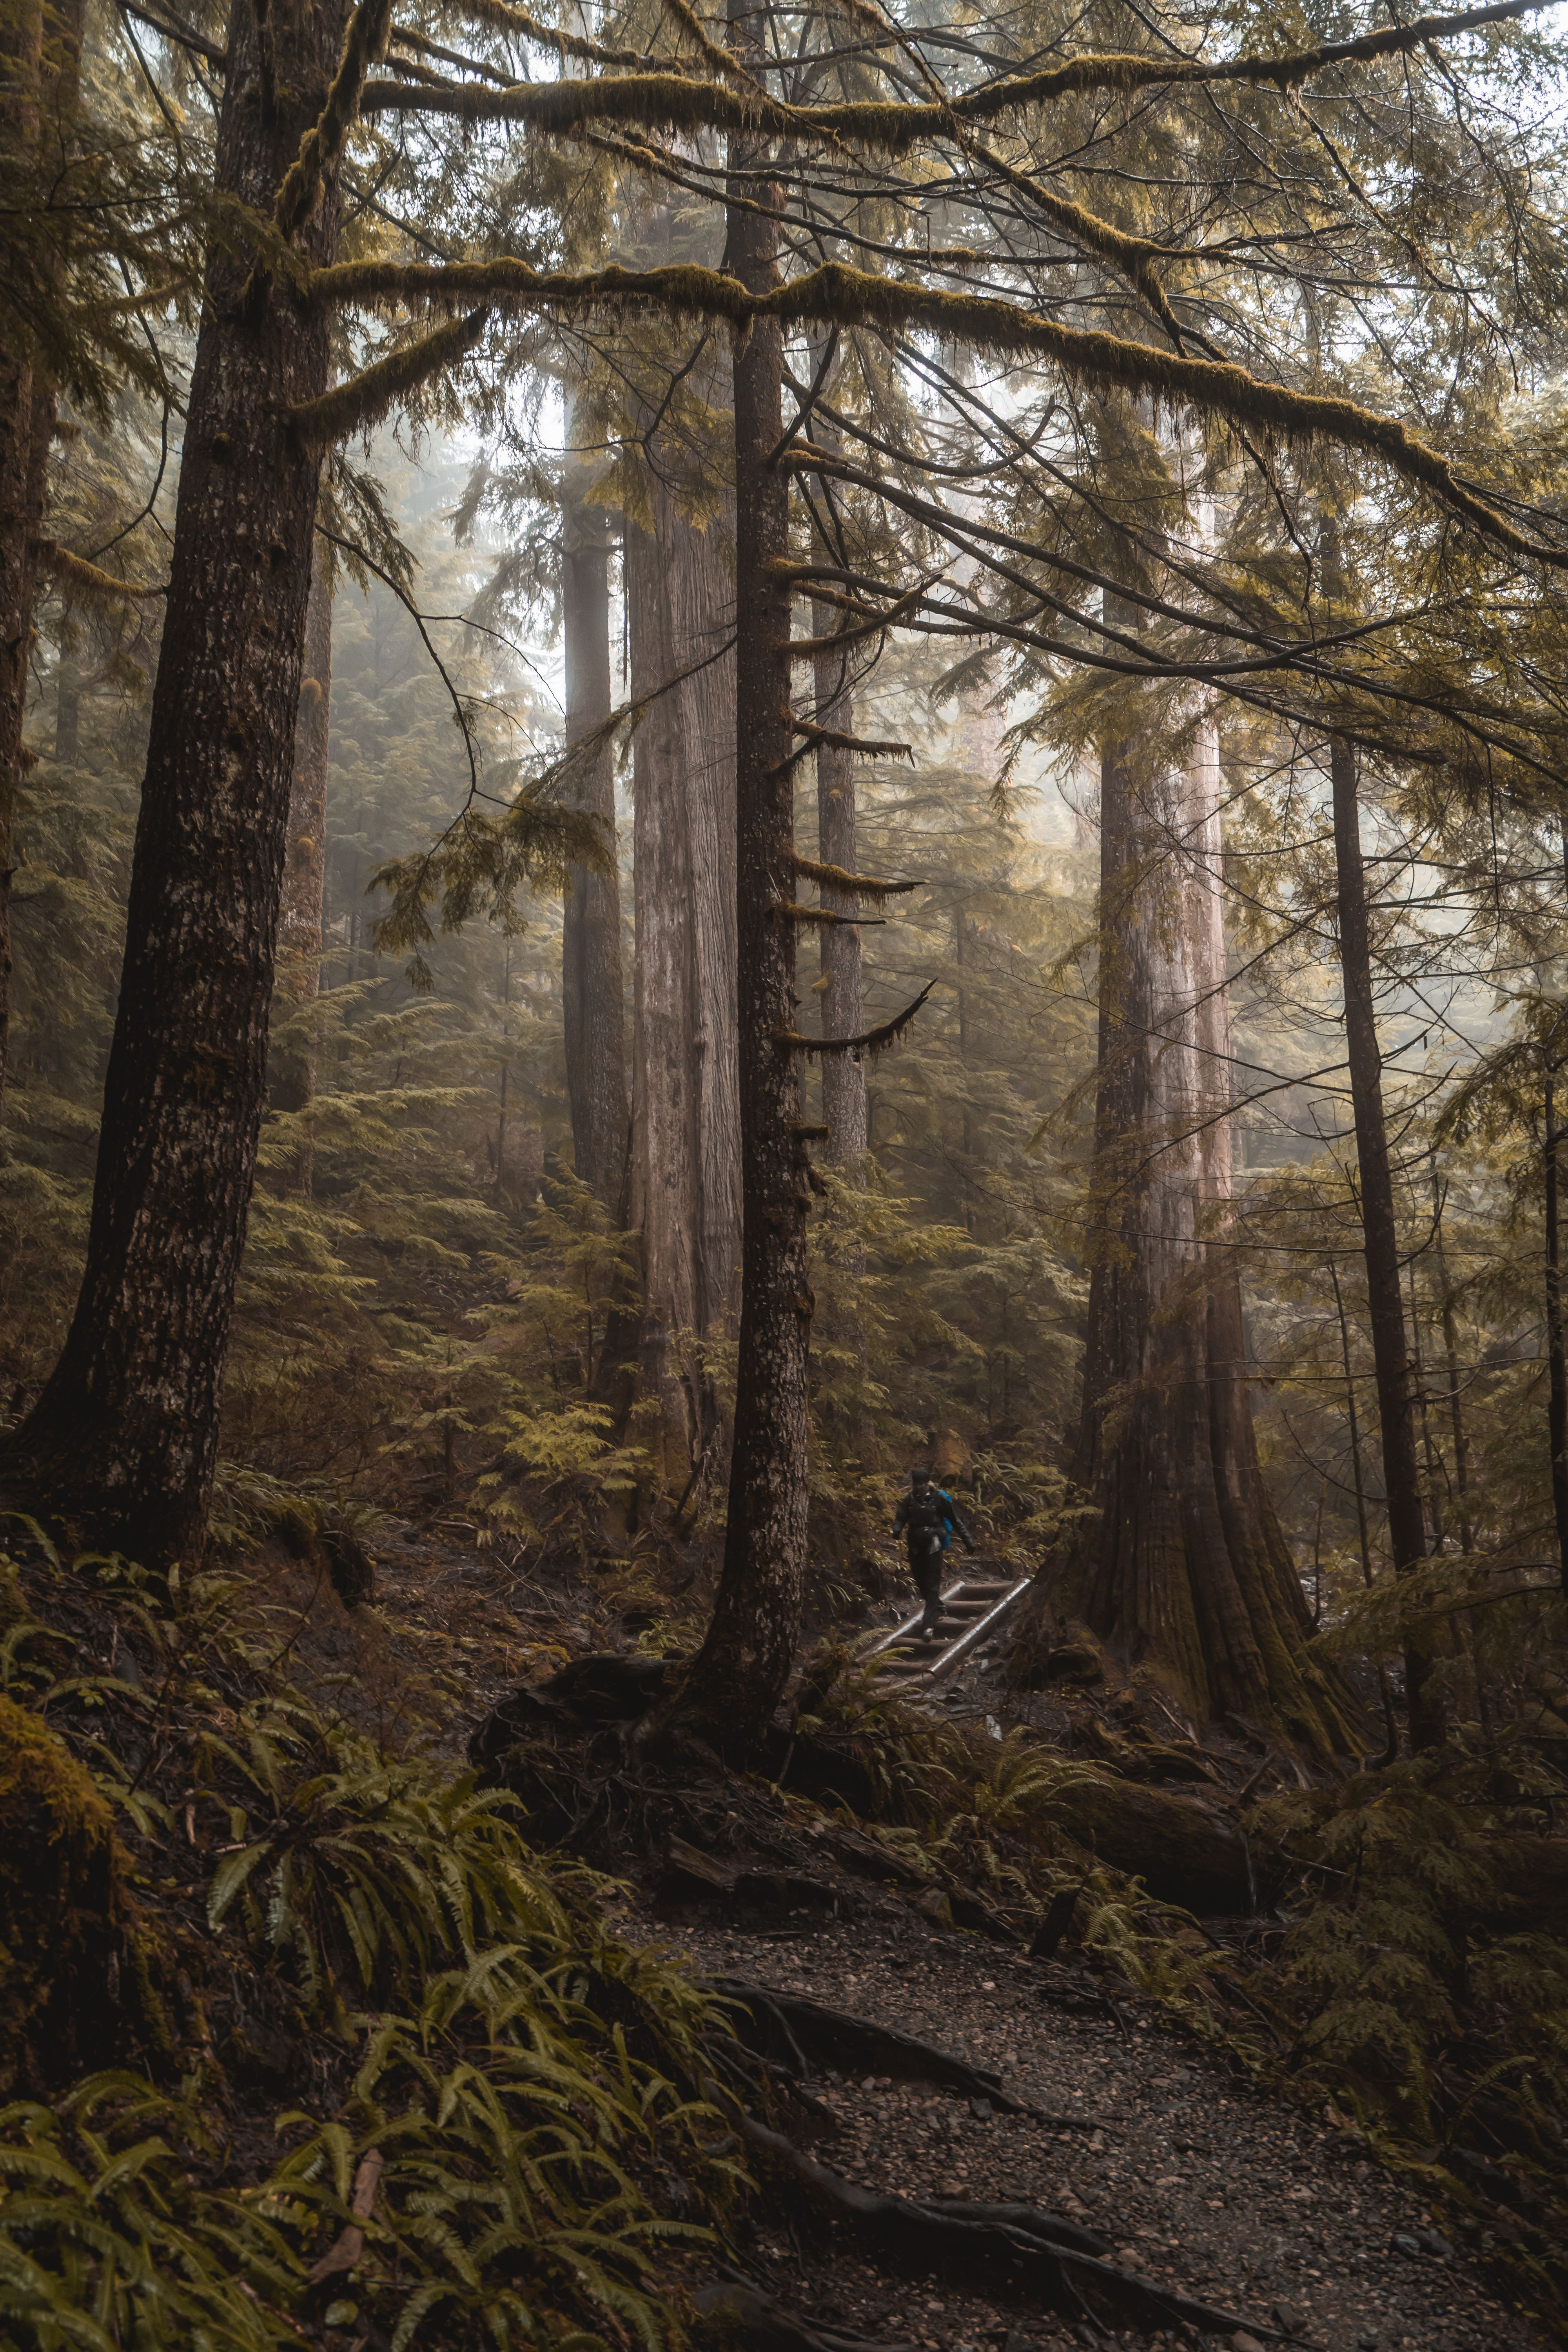 Running Through The Forest In 2020 Cinematic Photography Moody Photography Instagram Photos Creative